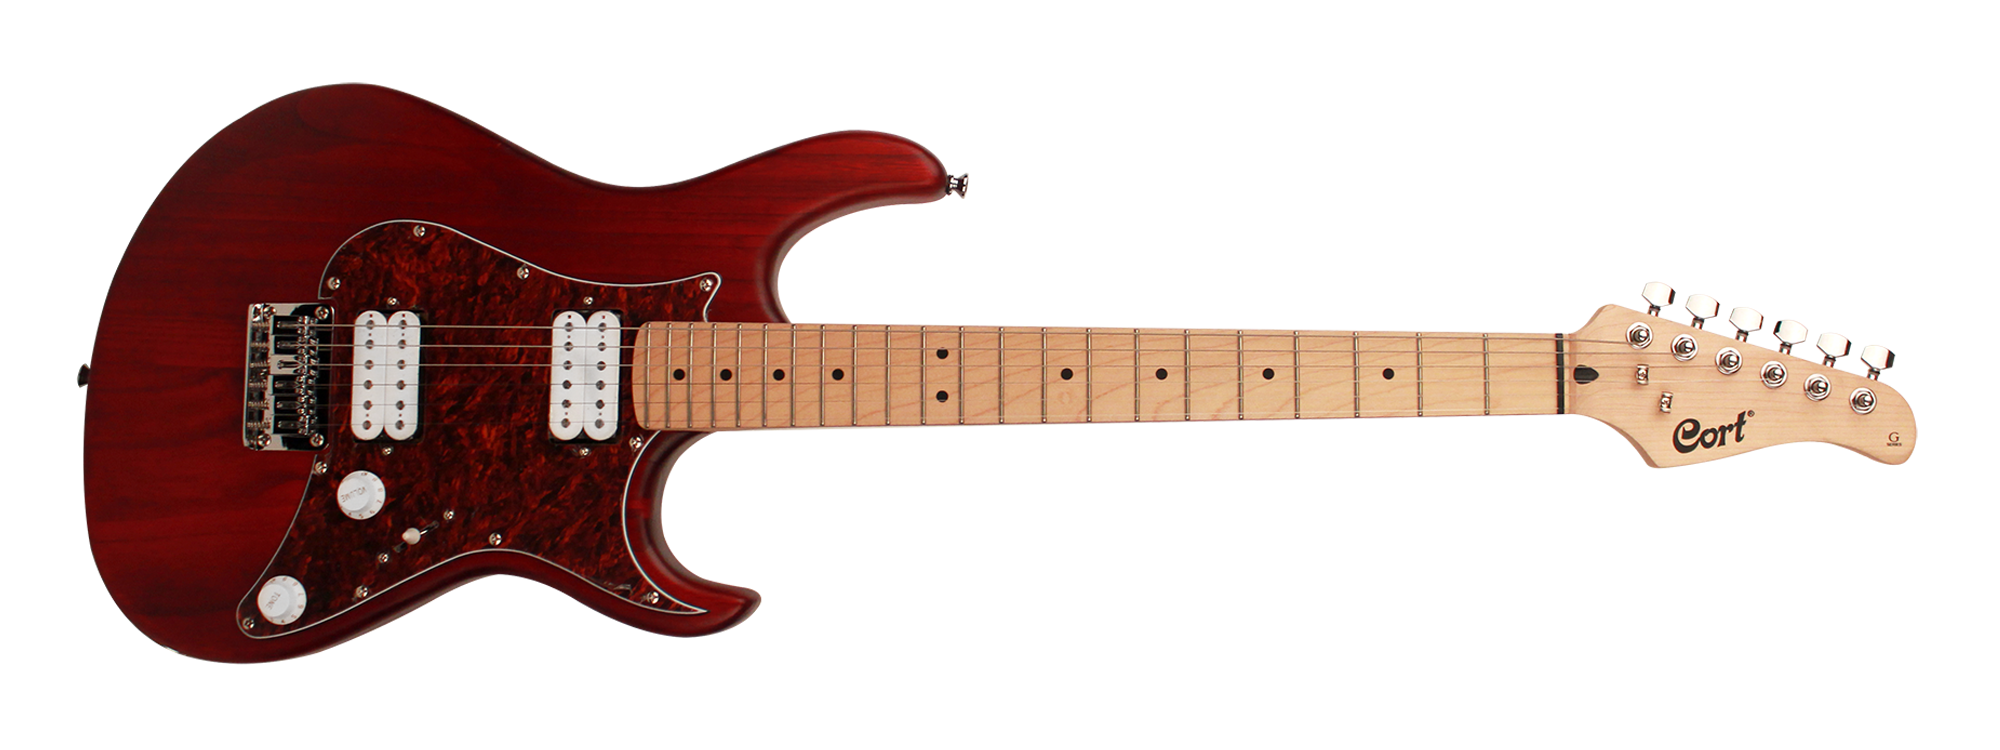 Cort G100OPBC Electric Guitar in Black Cherry